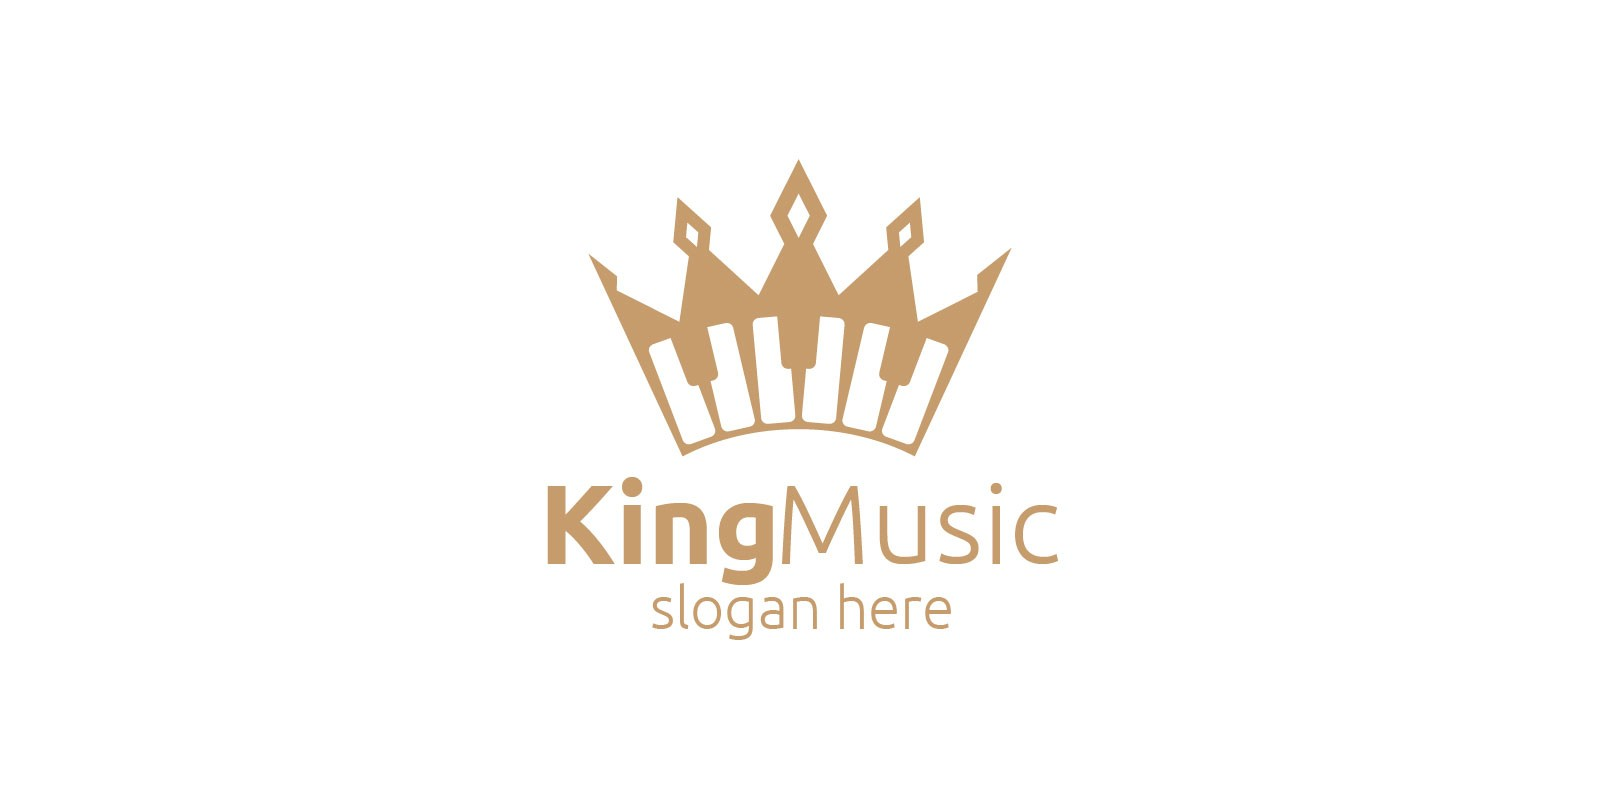 Music Logo with King and Piano Concept